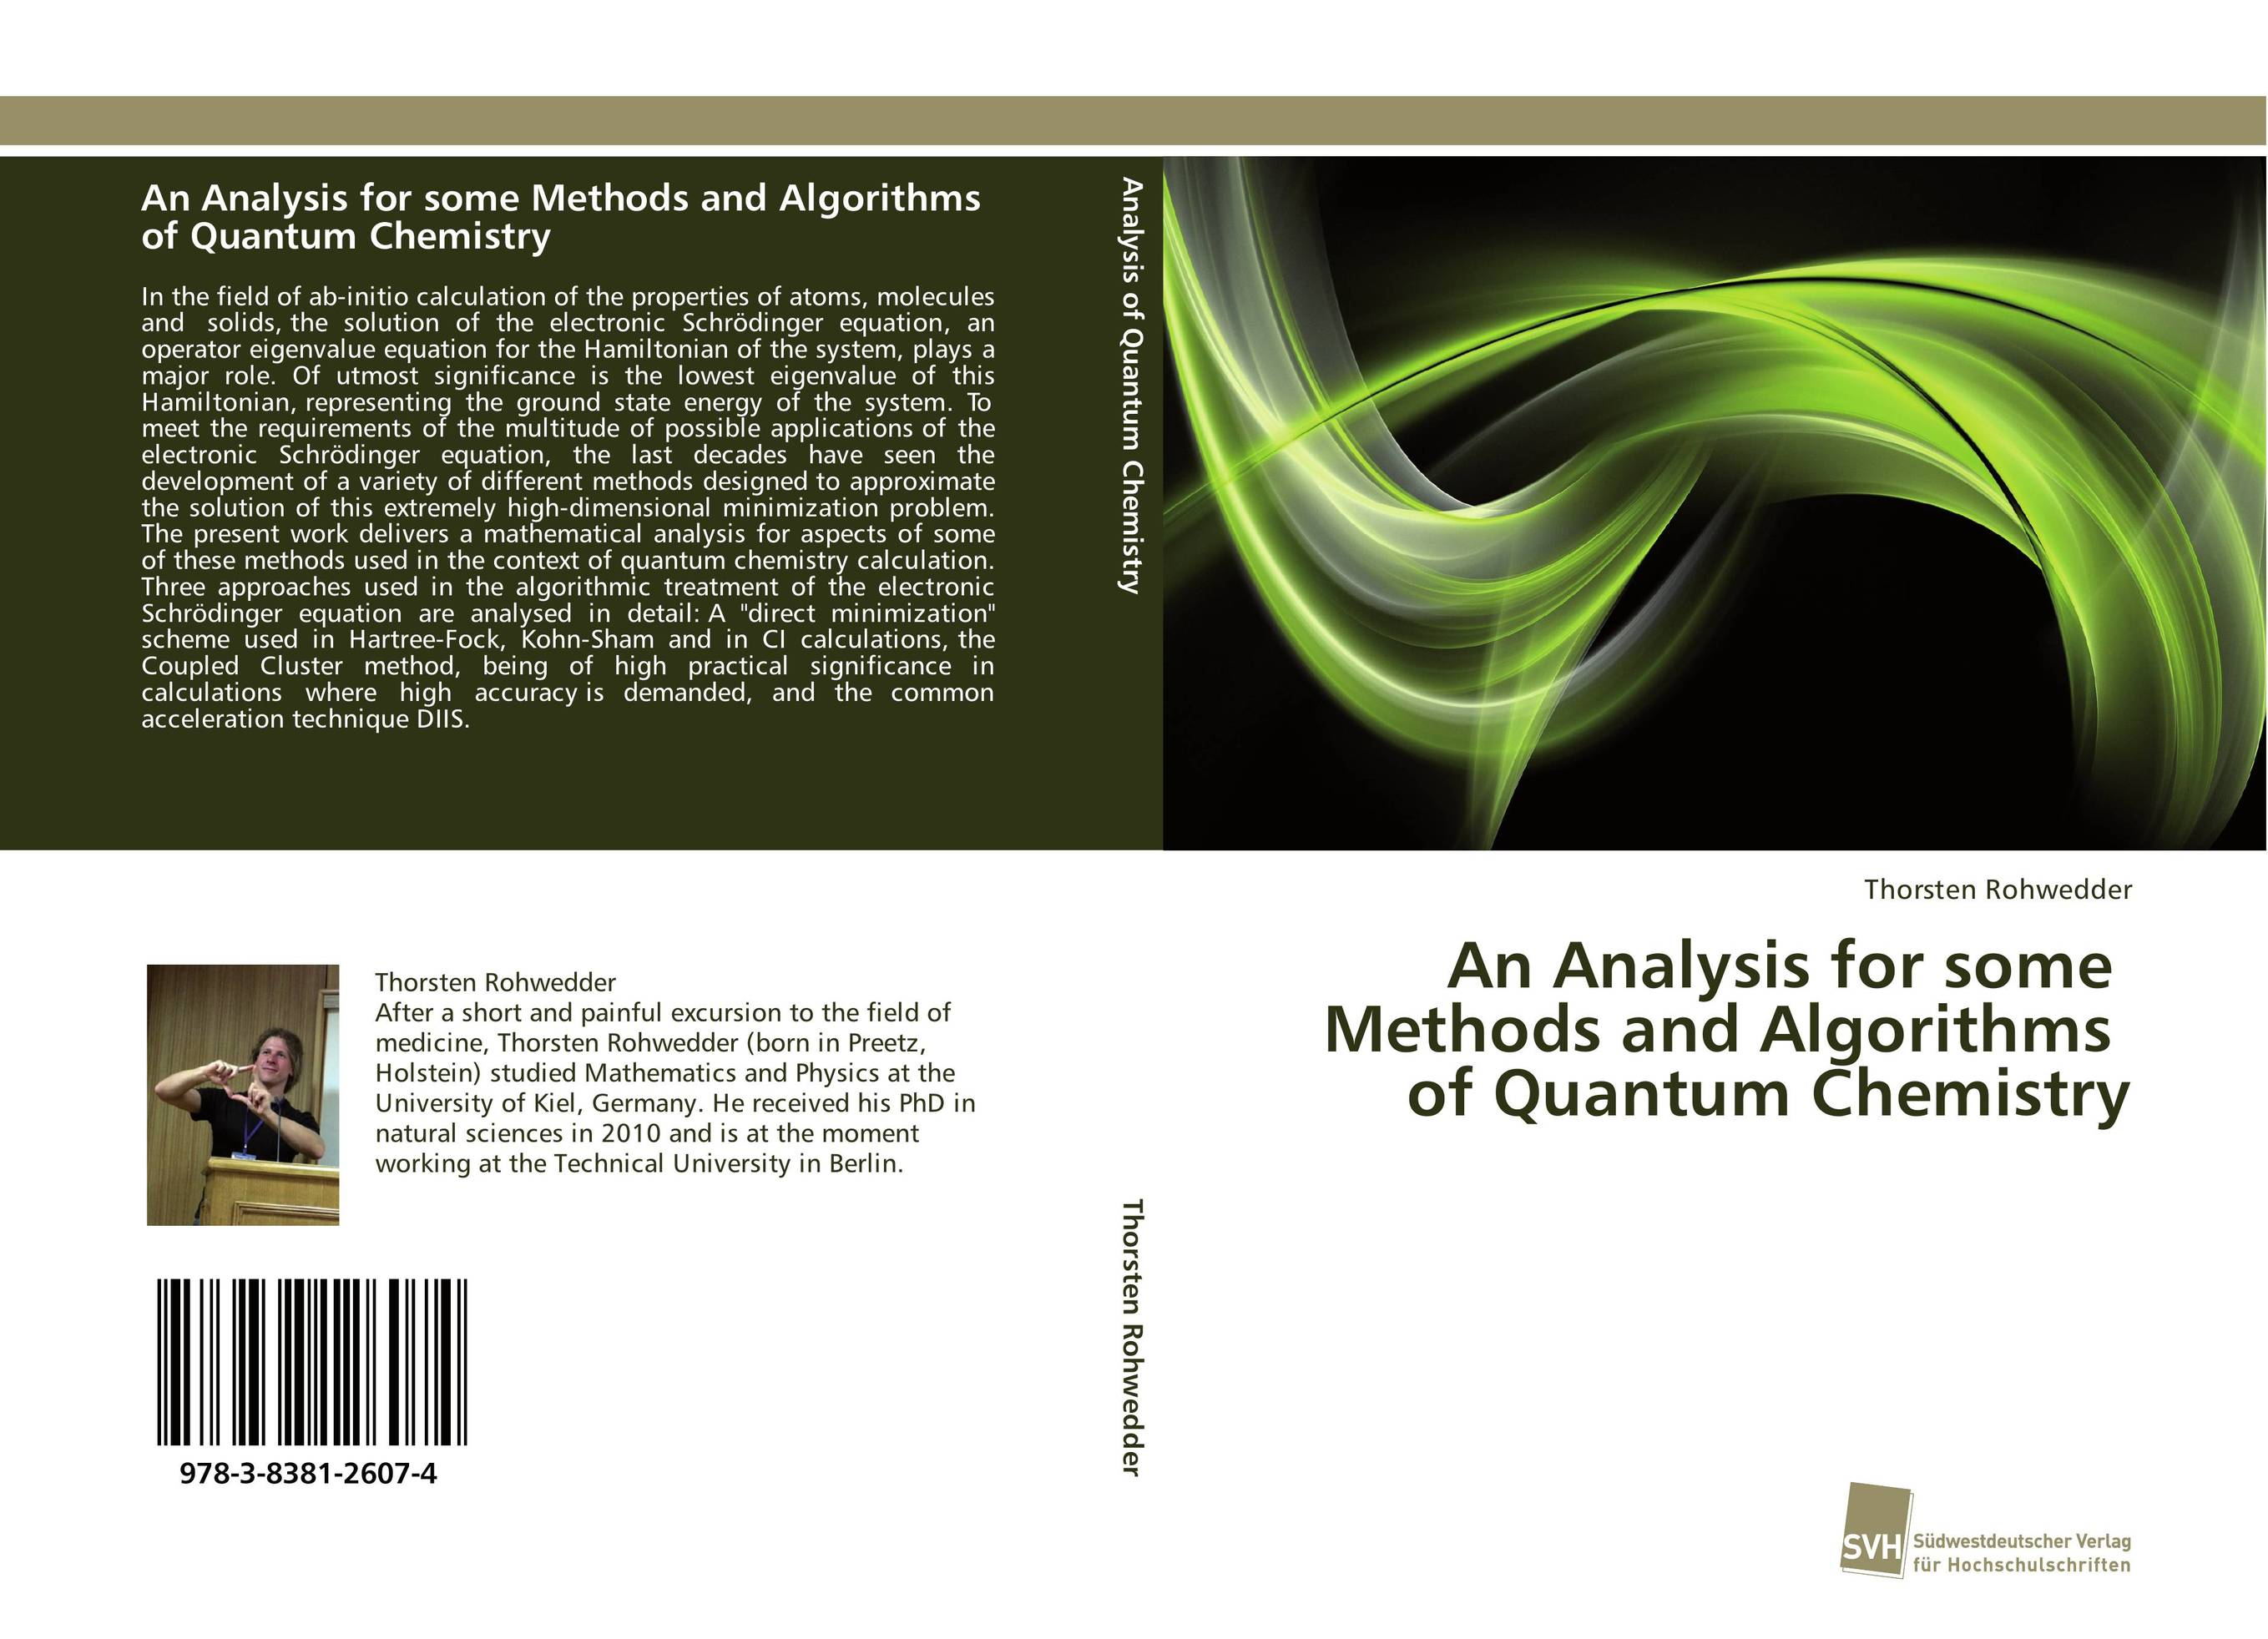 An Analysis for some Methods and Algorithms of Quantum Chemistry handbook of the exhibition of napier relics and of books instruments and devices for facilitating calculation